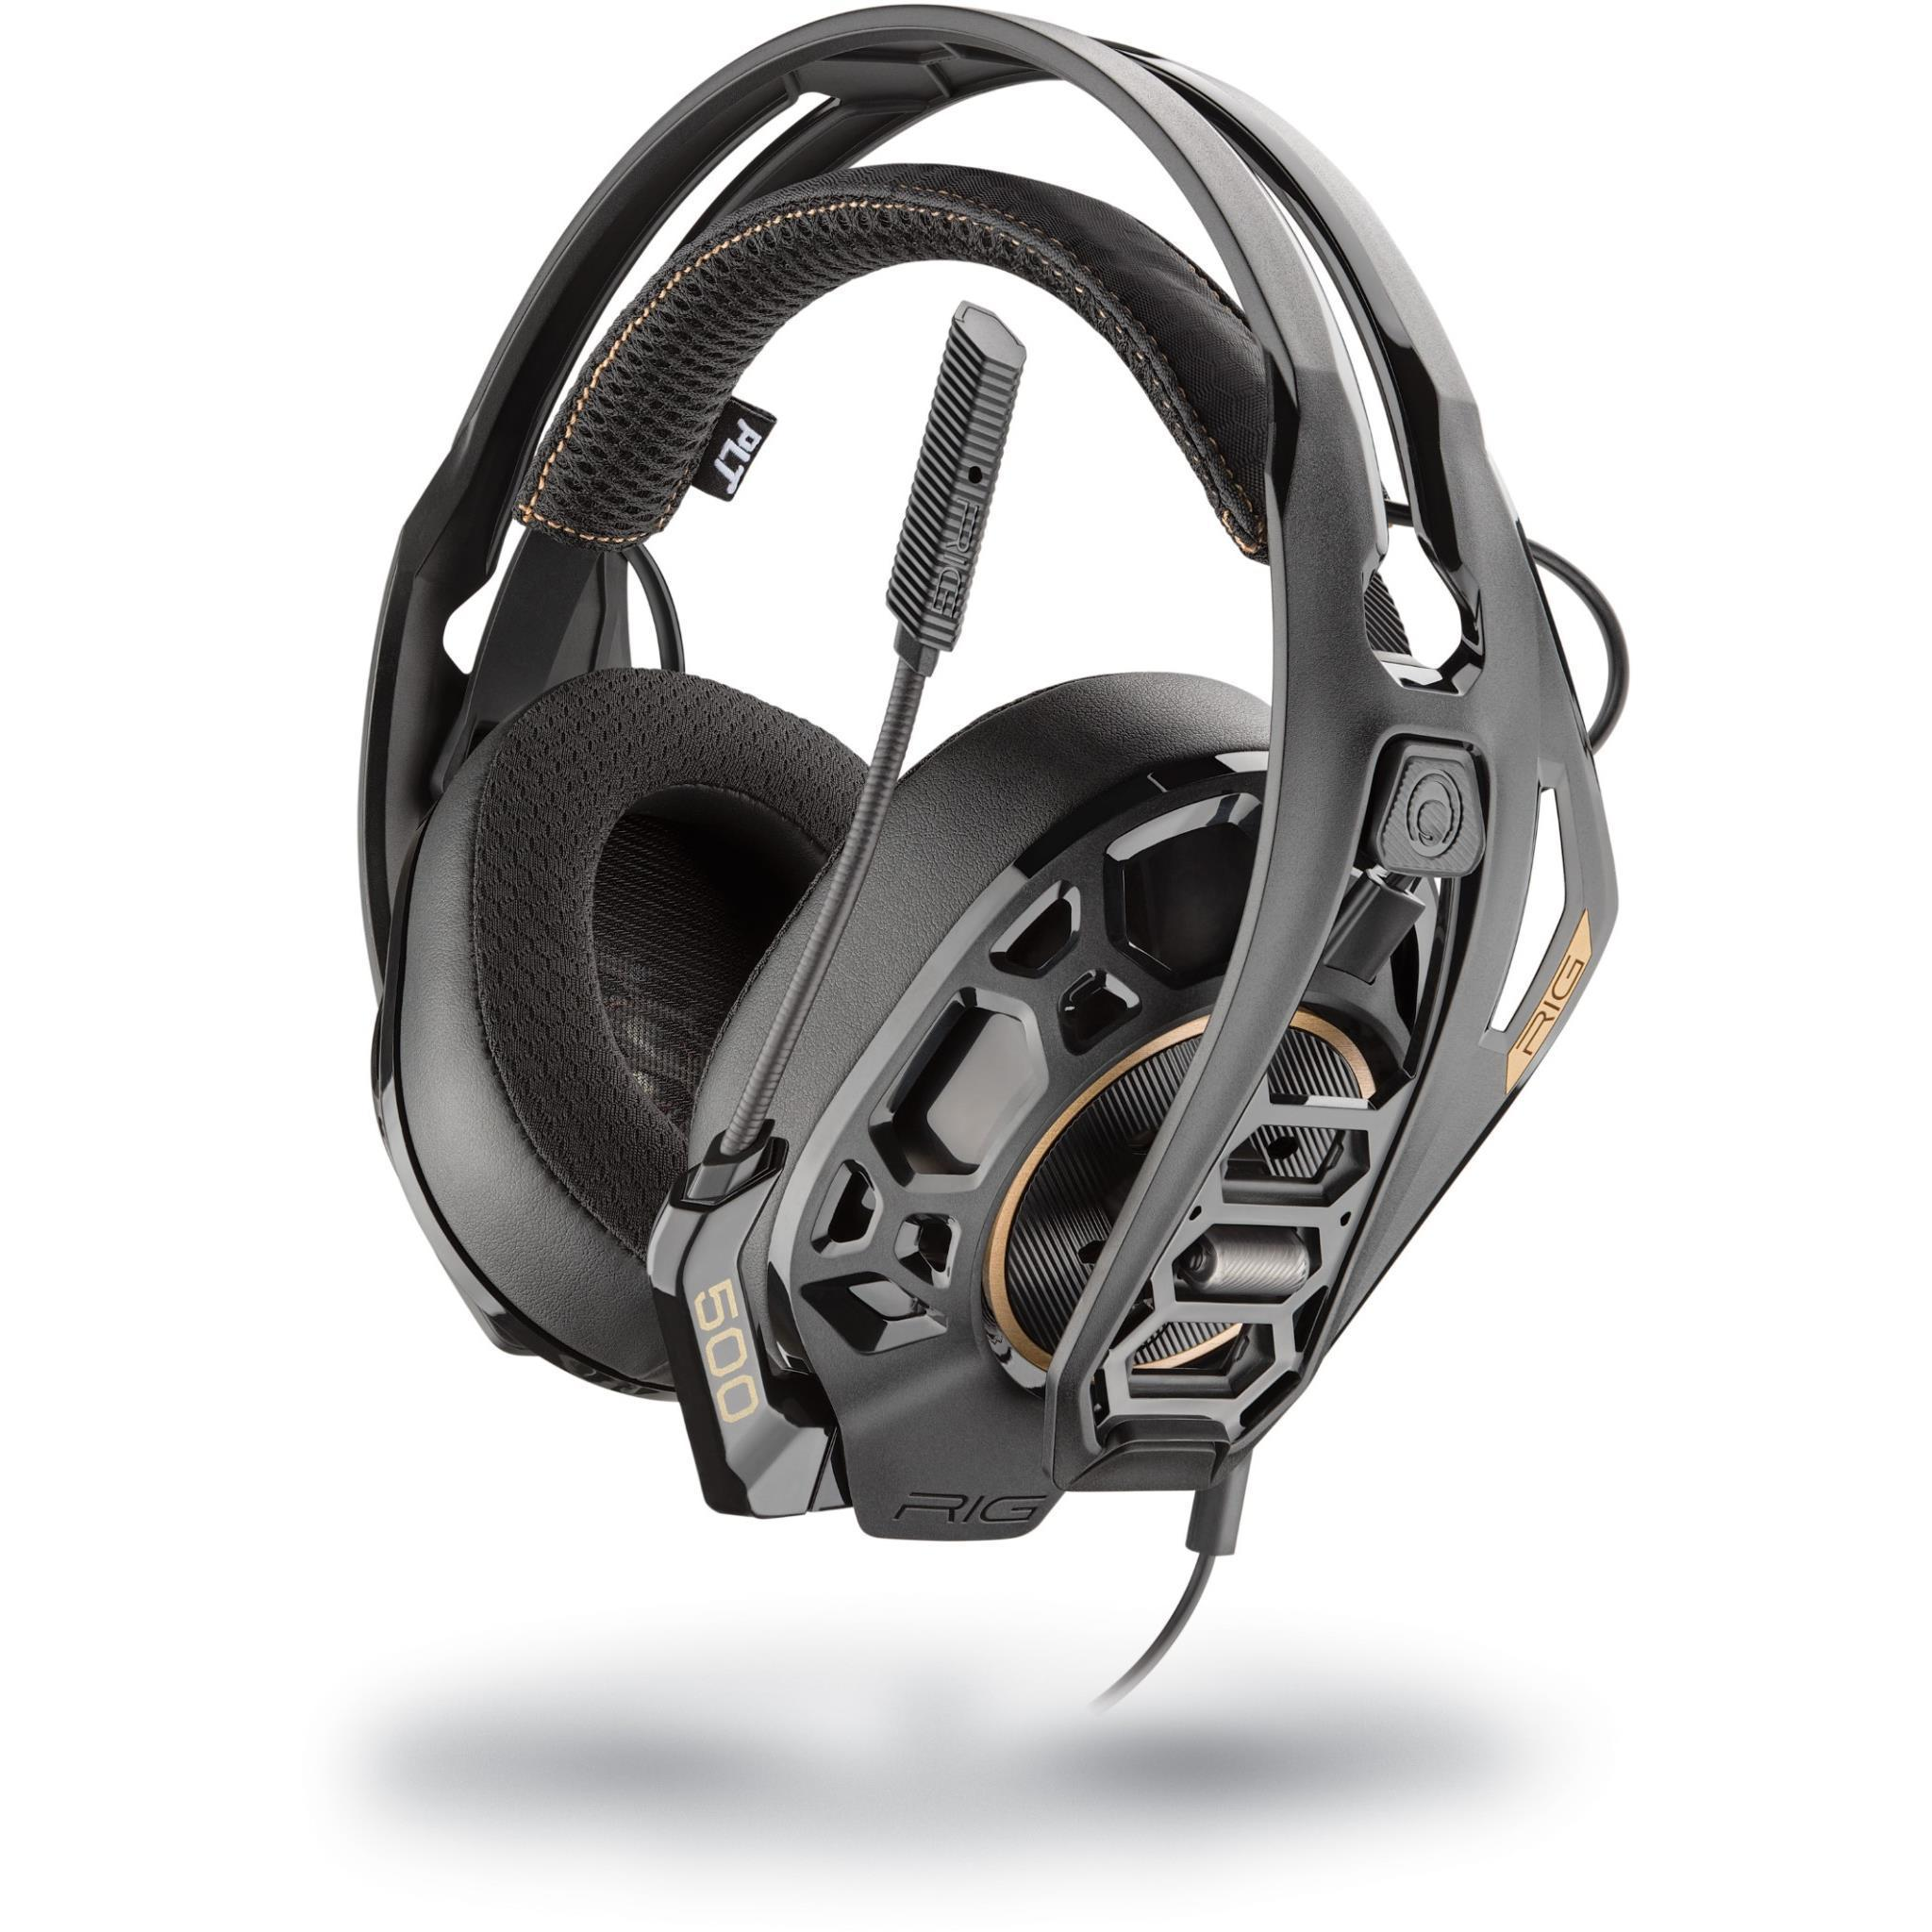 Plantronics RIG 500 PRO HA High-Resolution Gaming Headset for PC